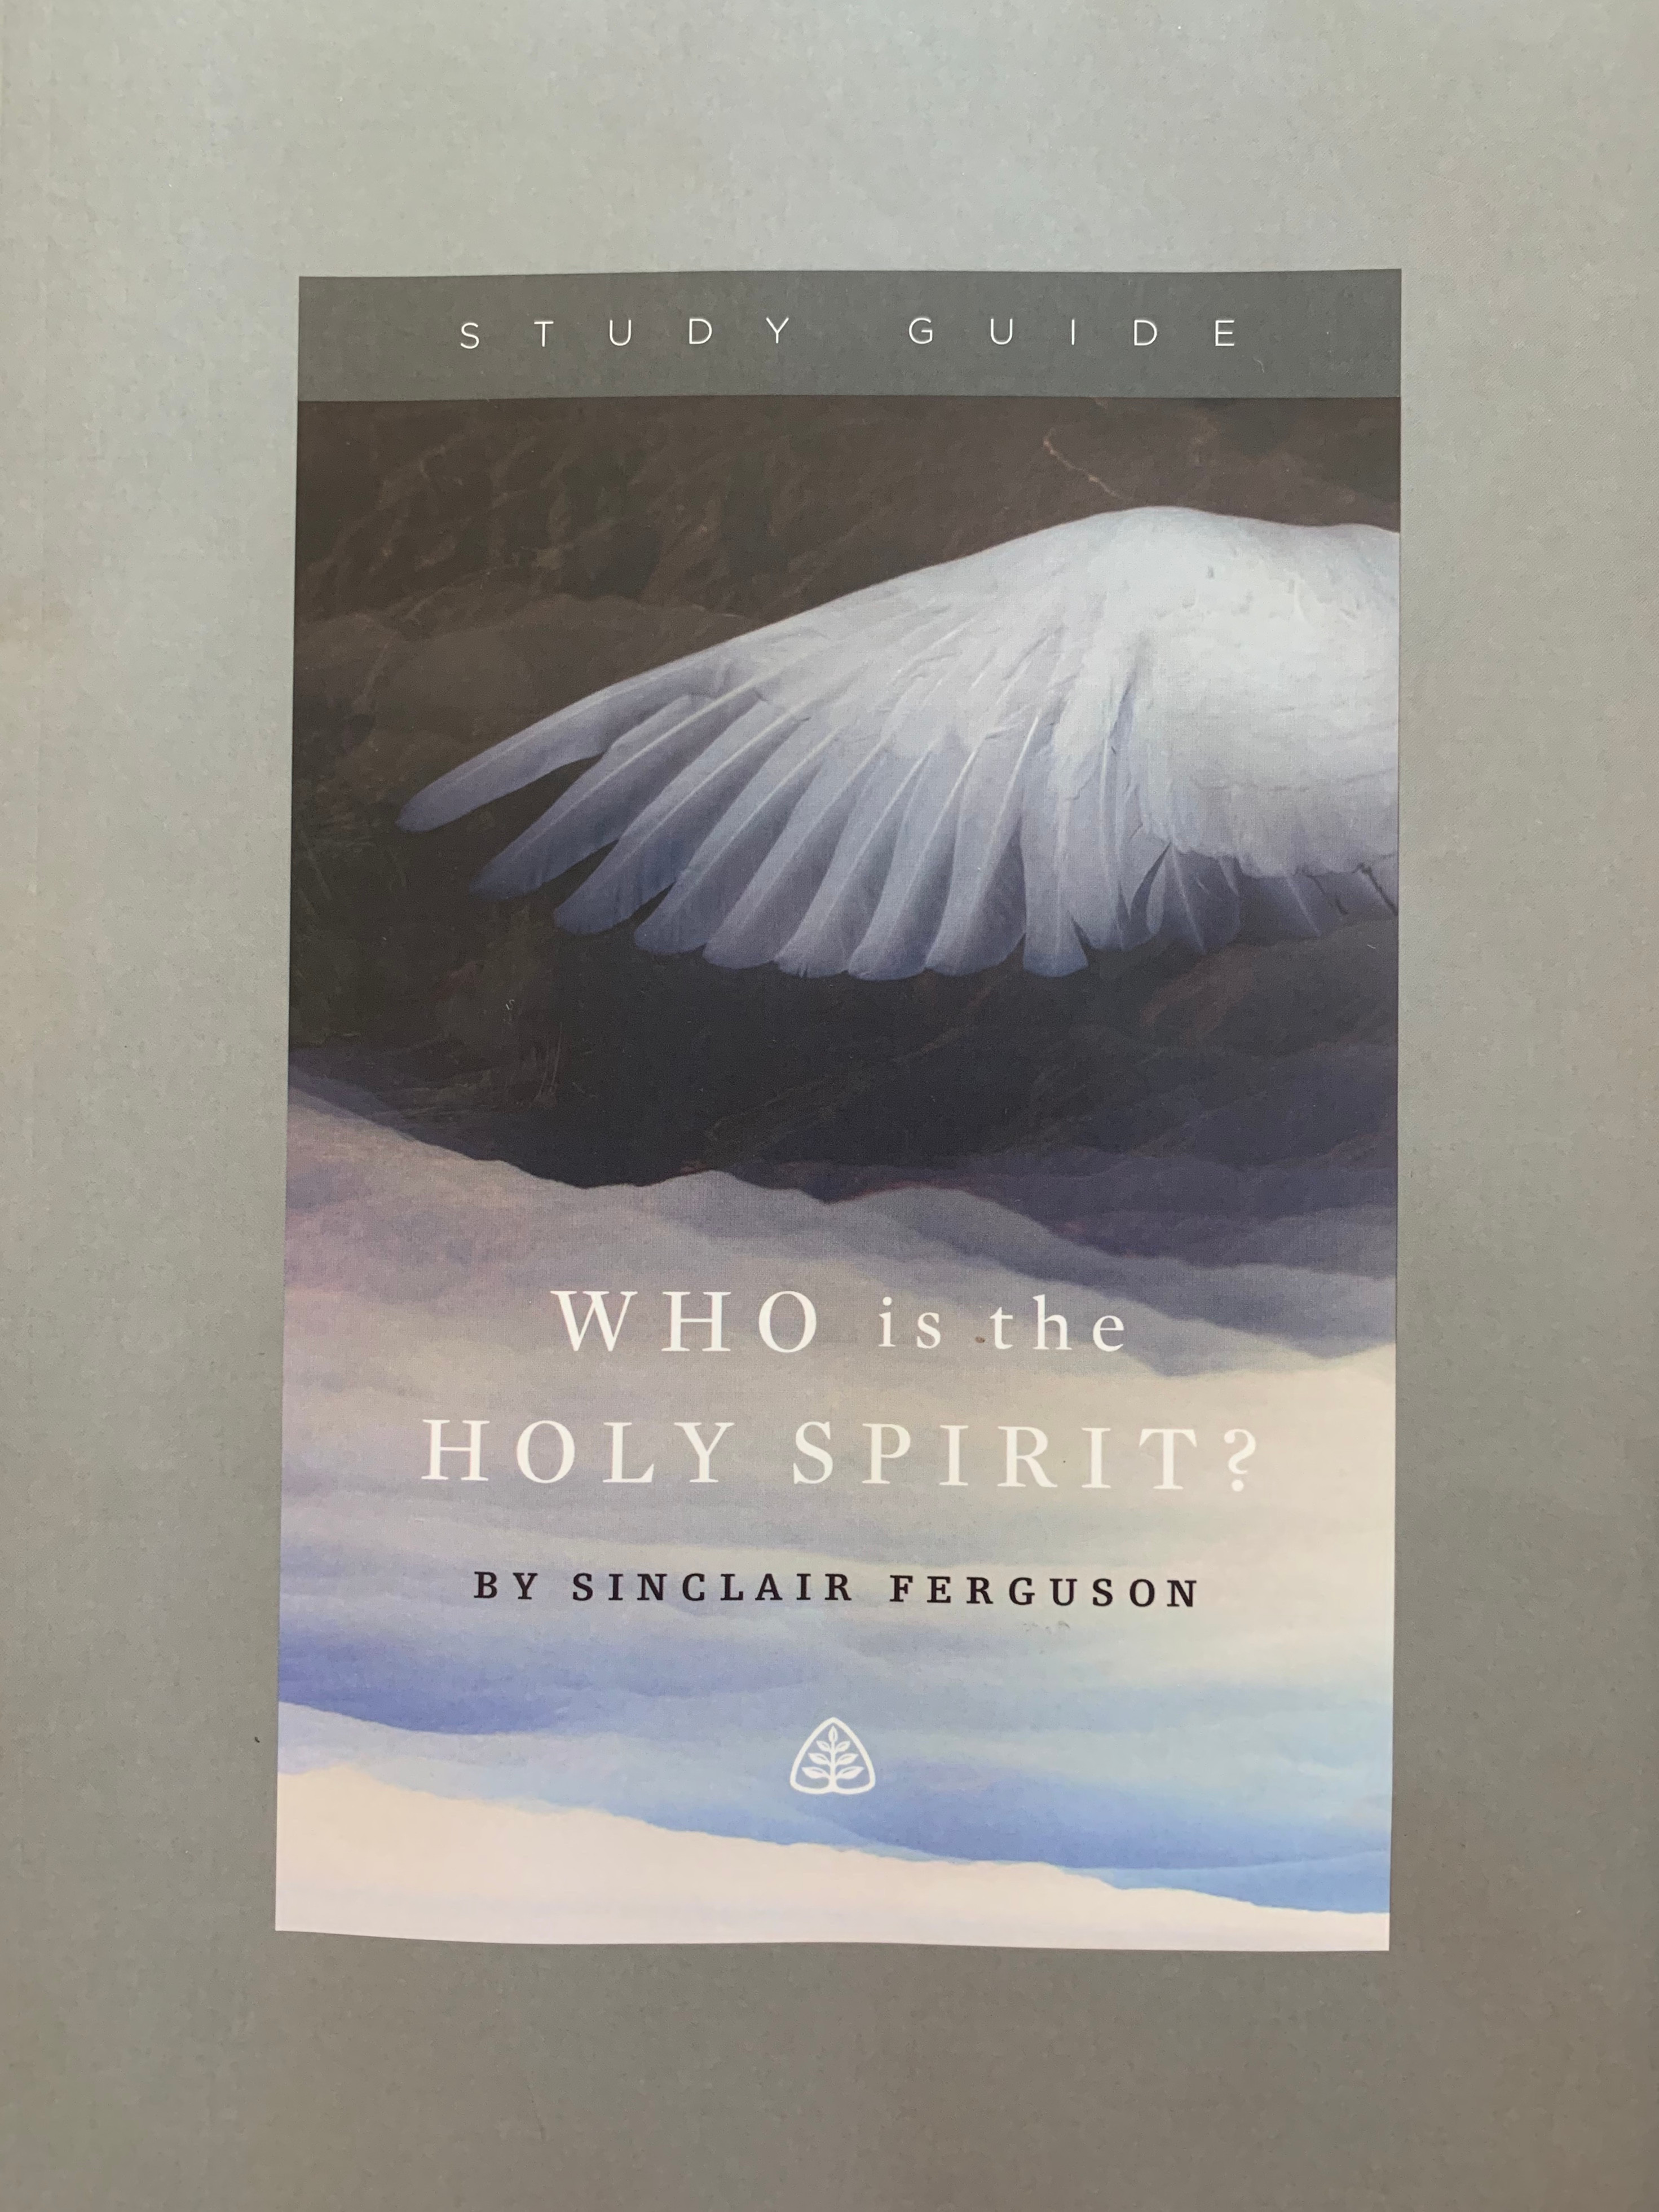 Who Is the HOLY SPIRIT Bible Study